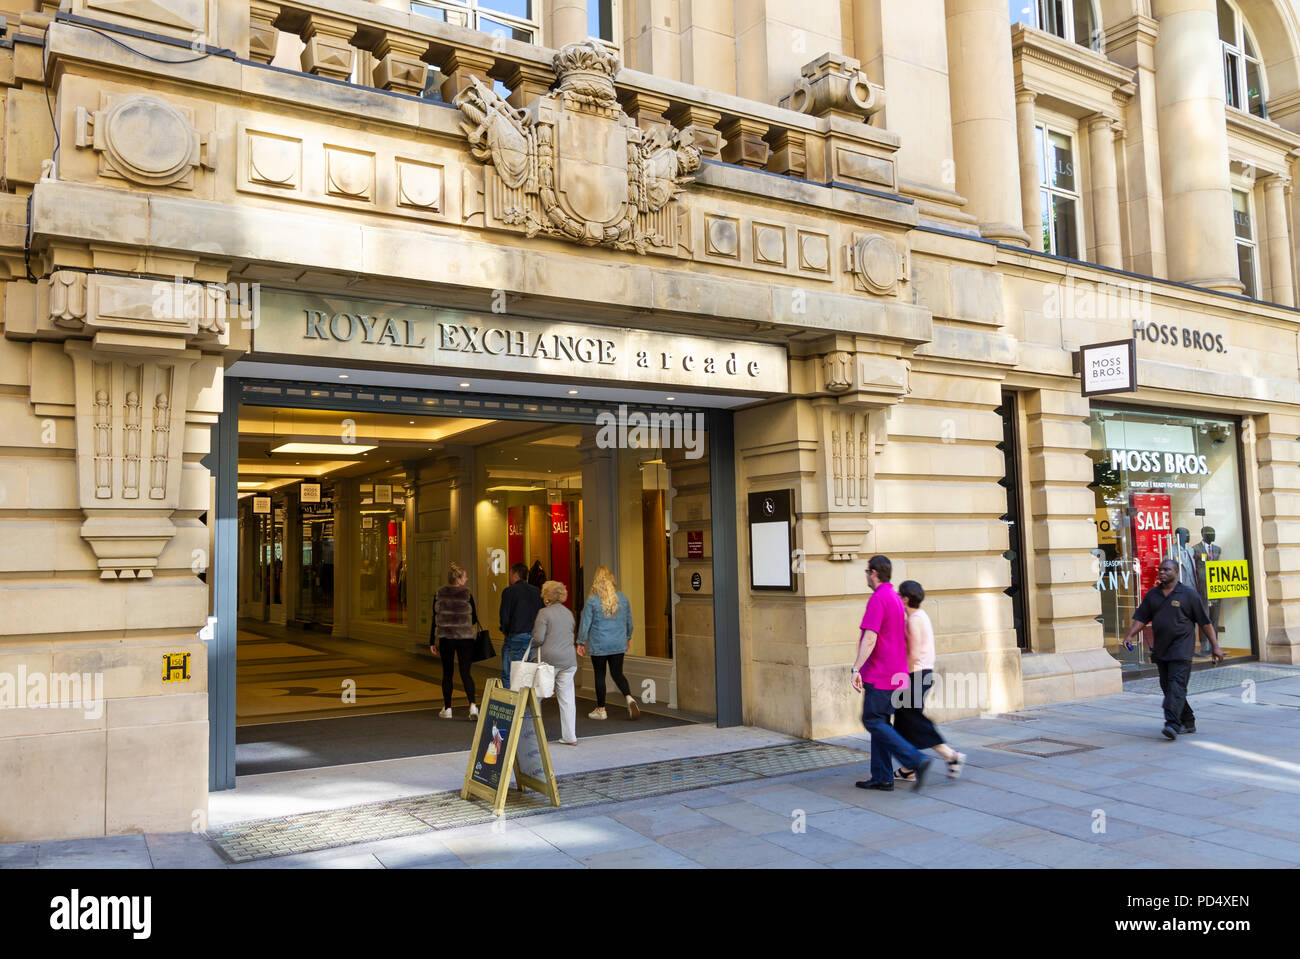 Entrance to Royal Exchange Arcade, Manchester. - Stock Image